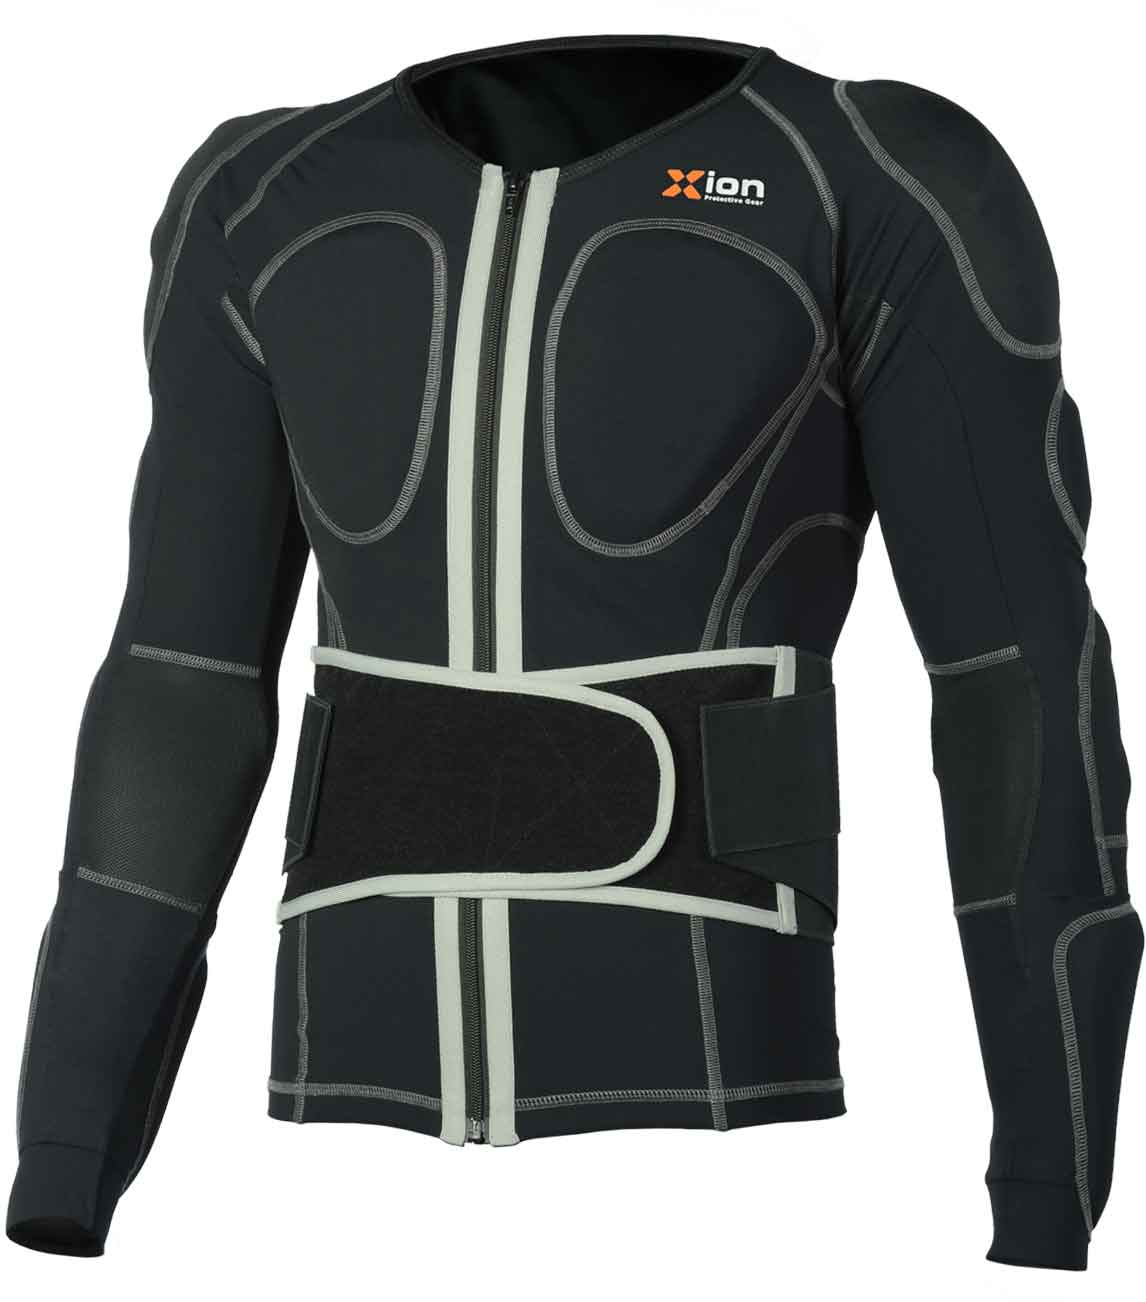 image xion-protective-gear-long-sleeve-jacket-jpg